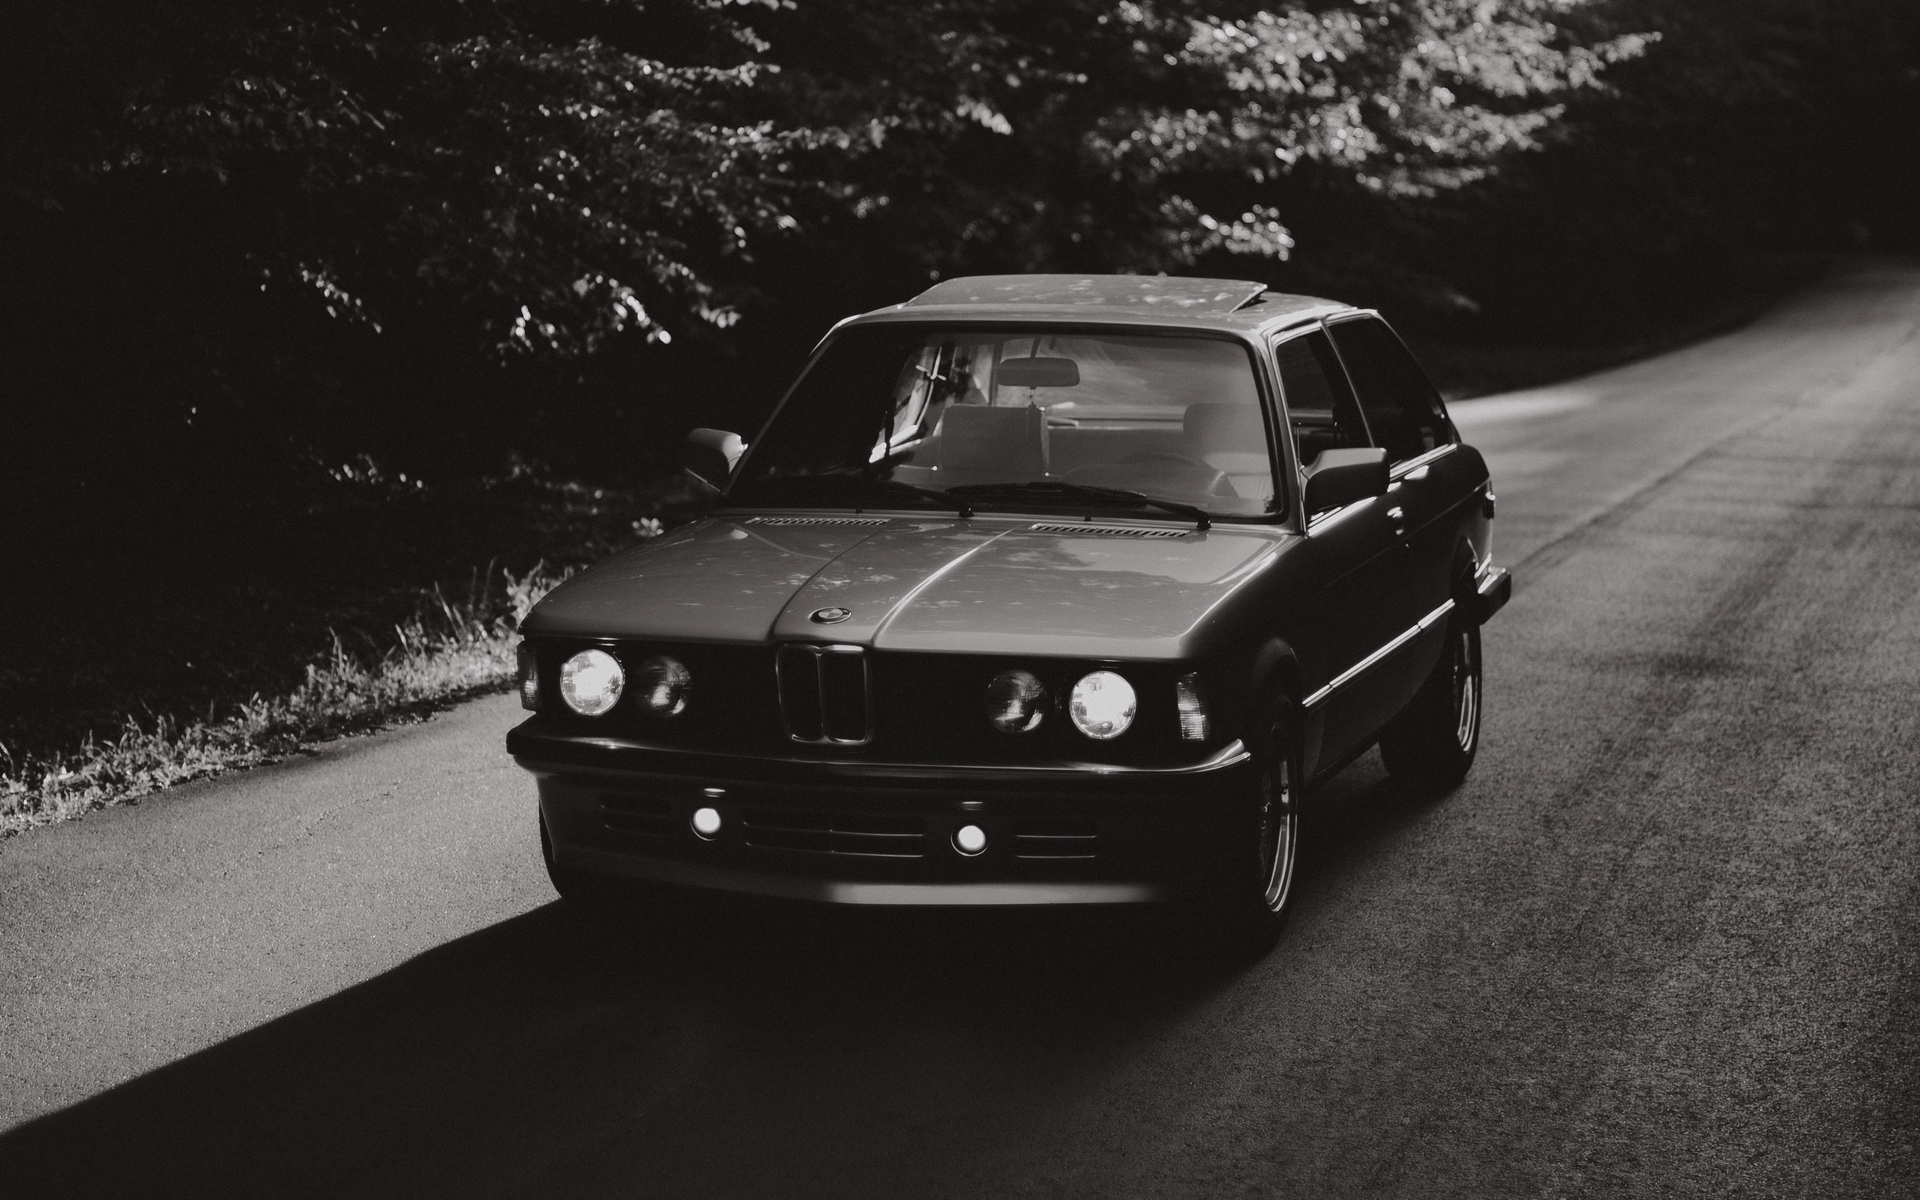 Old Car BMW HD wallpaper | HD Latest Wallpapers